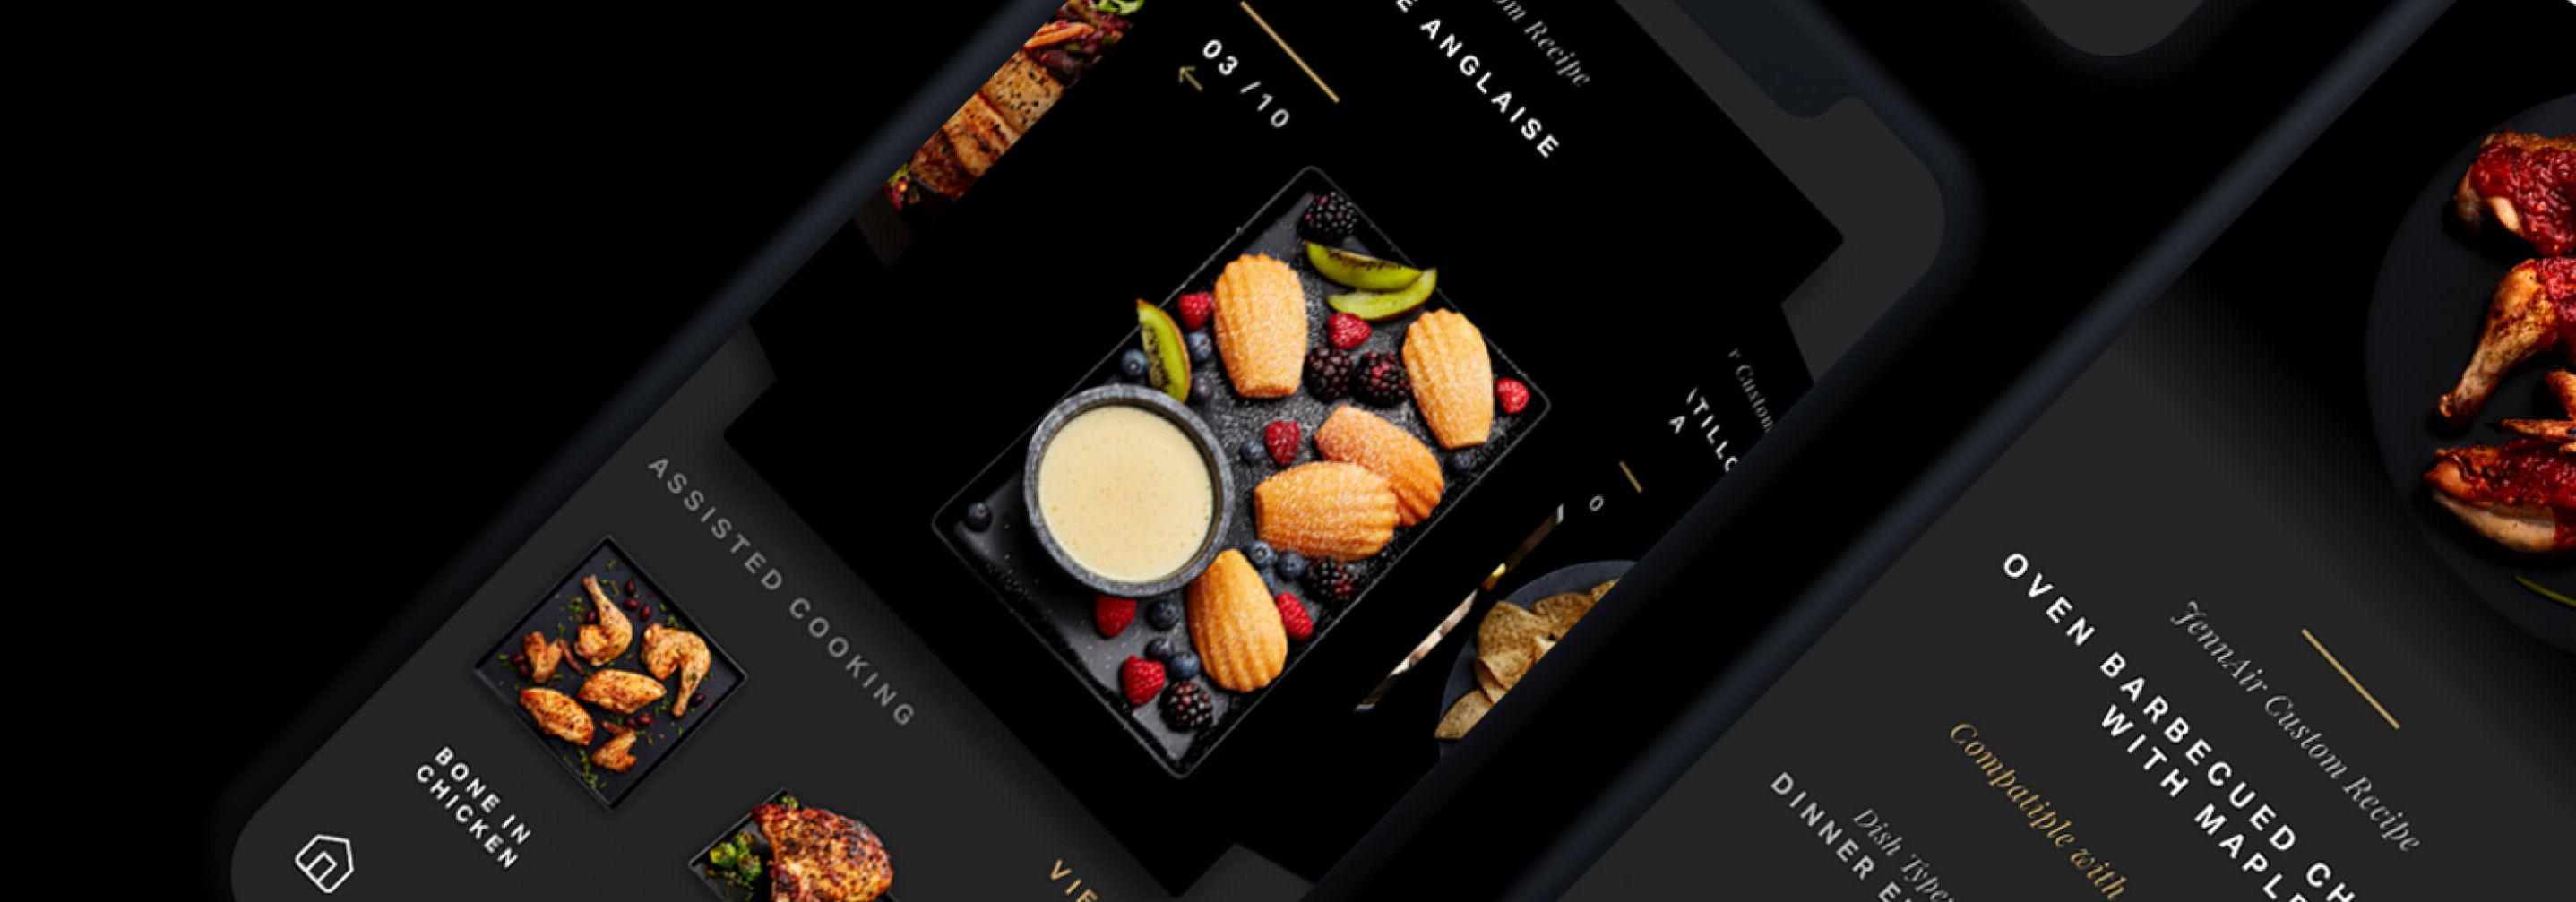 A phone showing recipes available on the JennAir® Culinary Center.